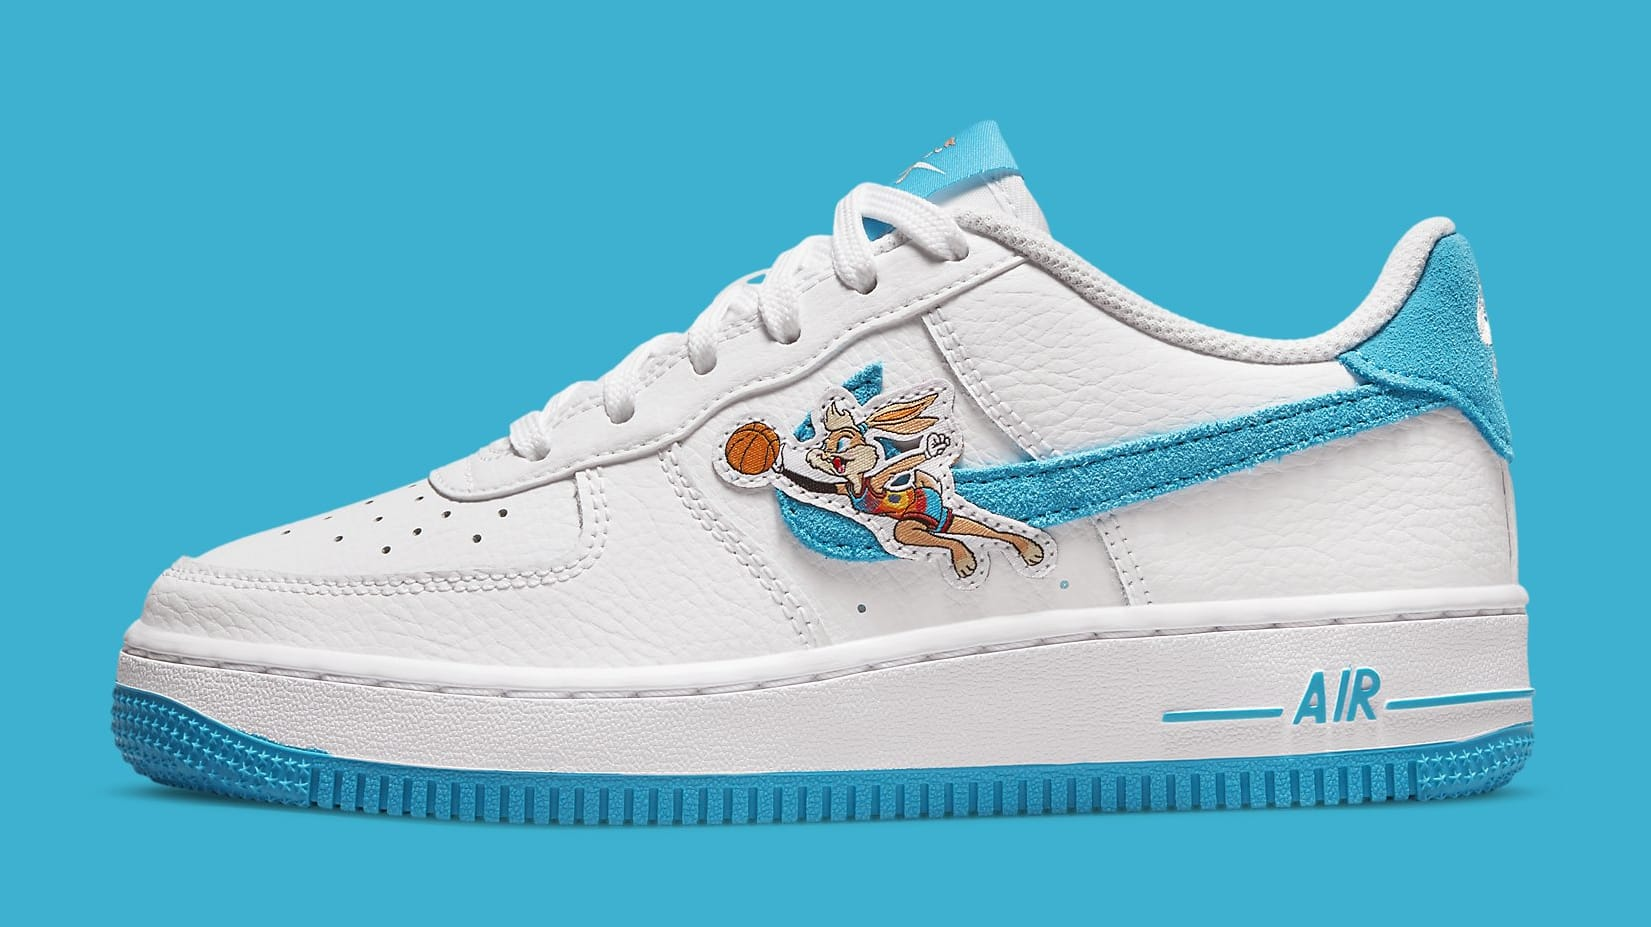 Nike Air Force 1 Low GS 'Space Jam' DM3353-100 Lateral